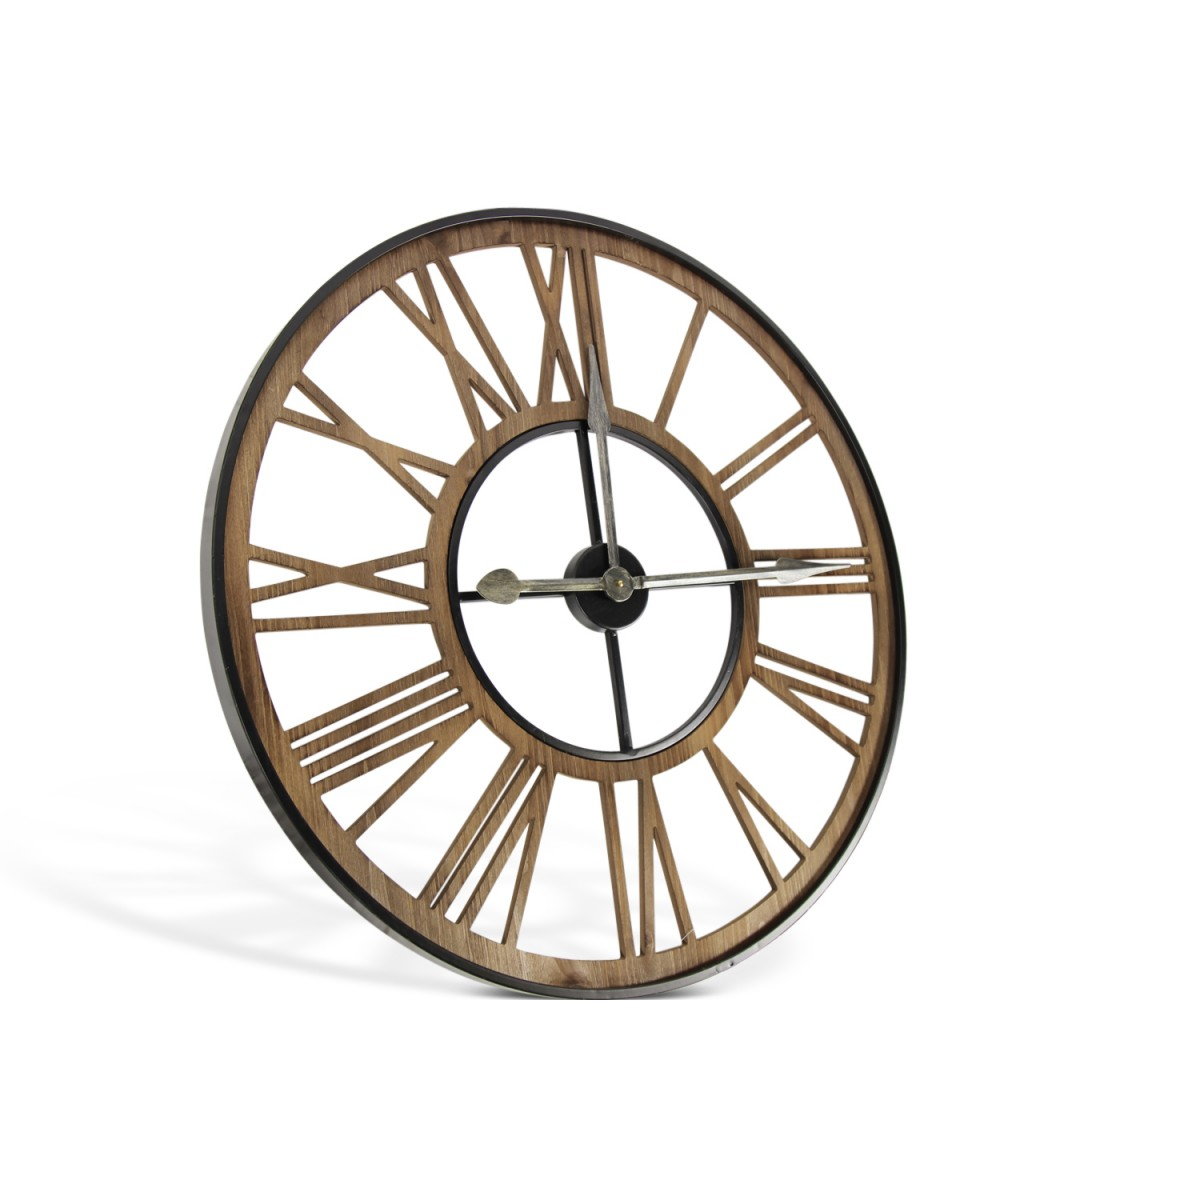 Grande Horloge Ancienne Fer Forge Marron 80x4x80cm